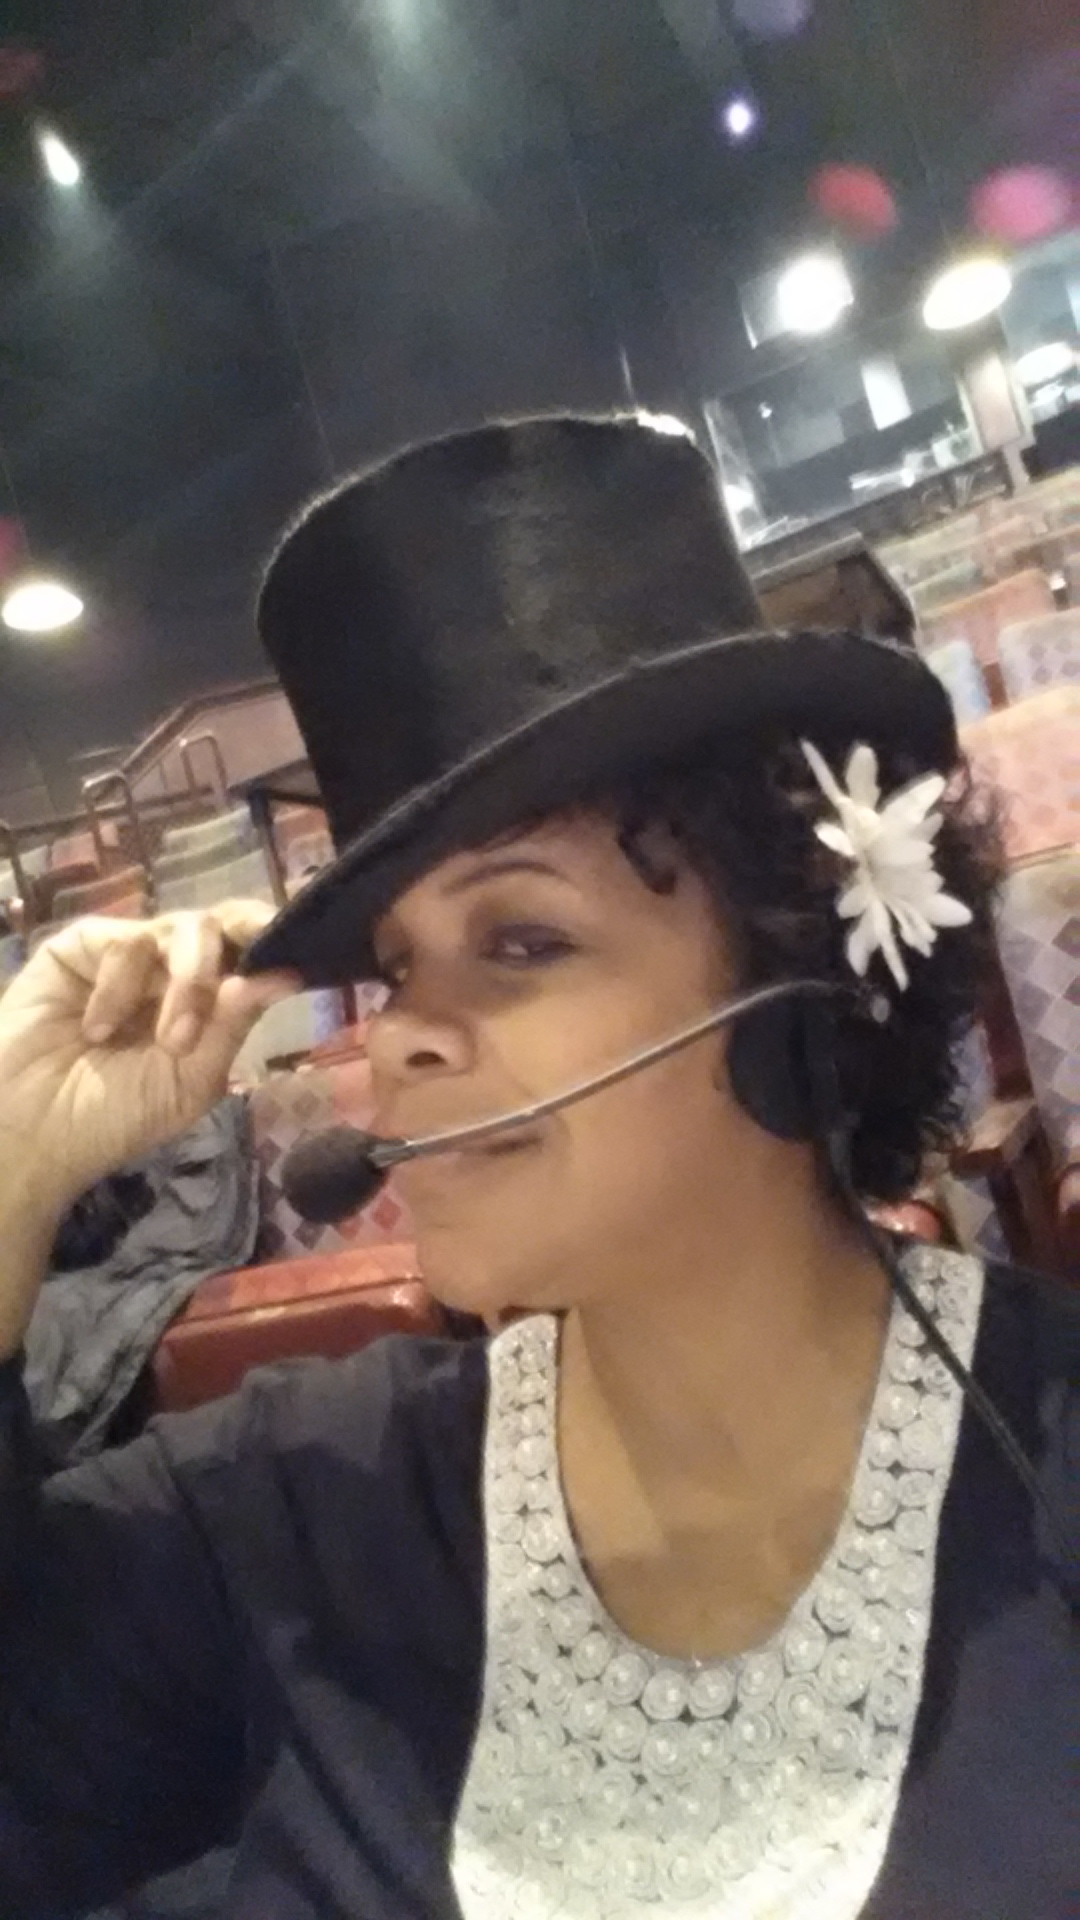 What She Looks Like: Carmelita Becnel, Stage Manager